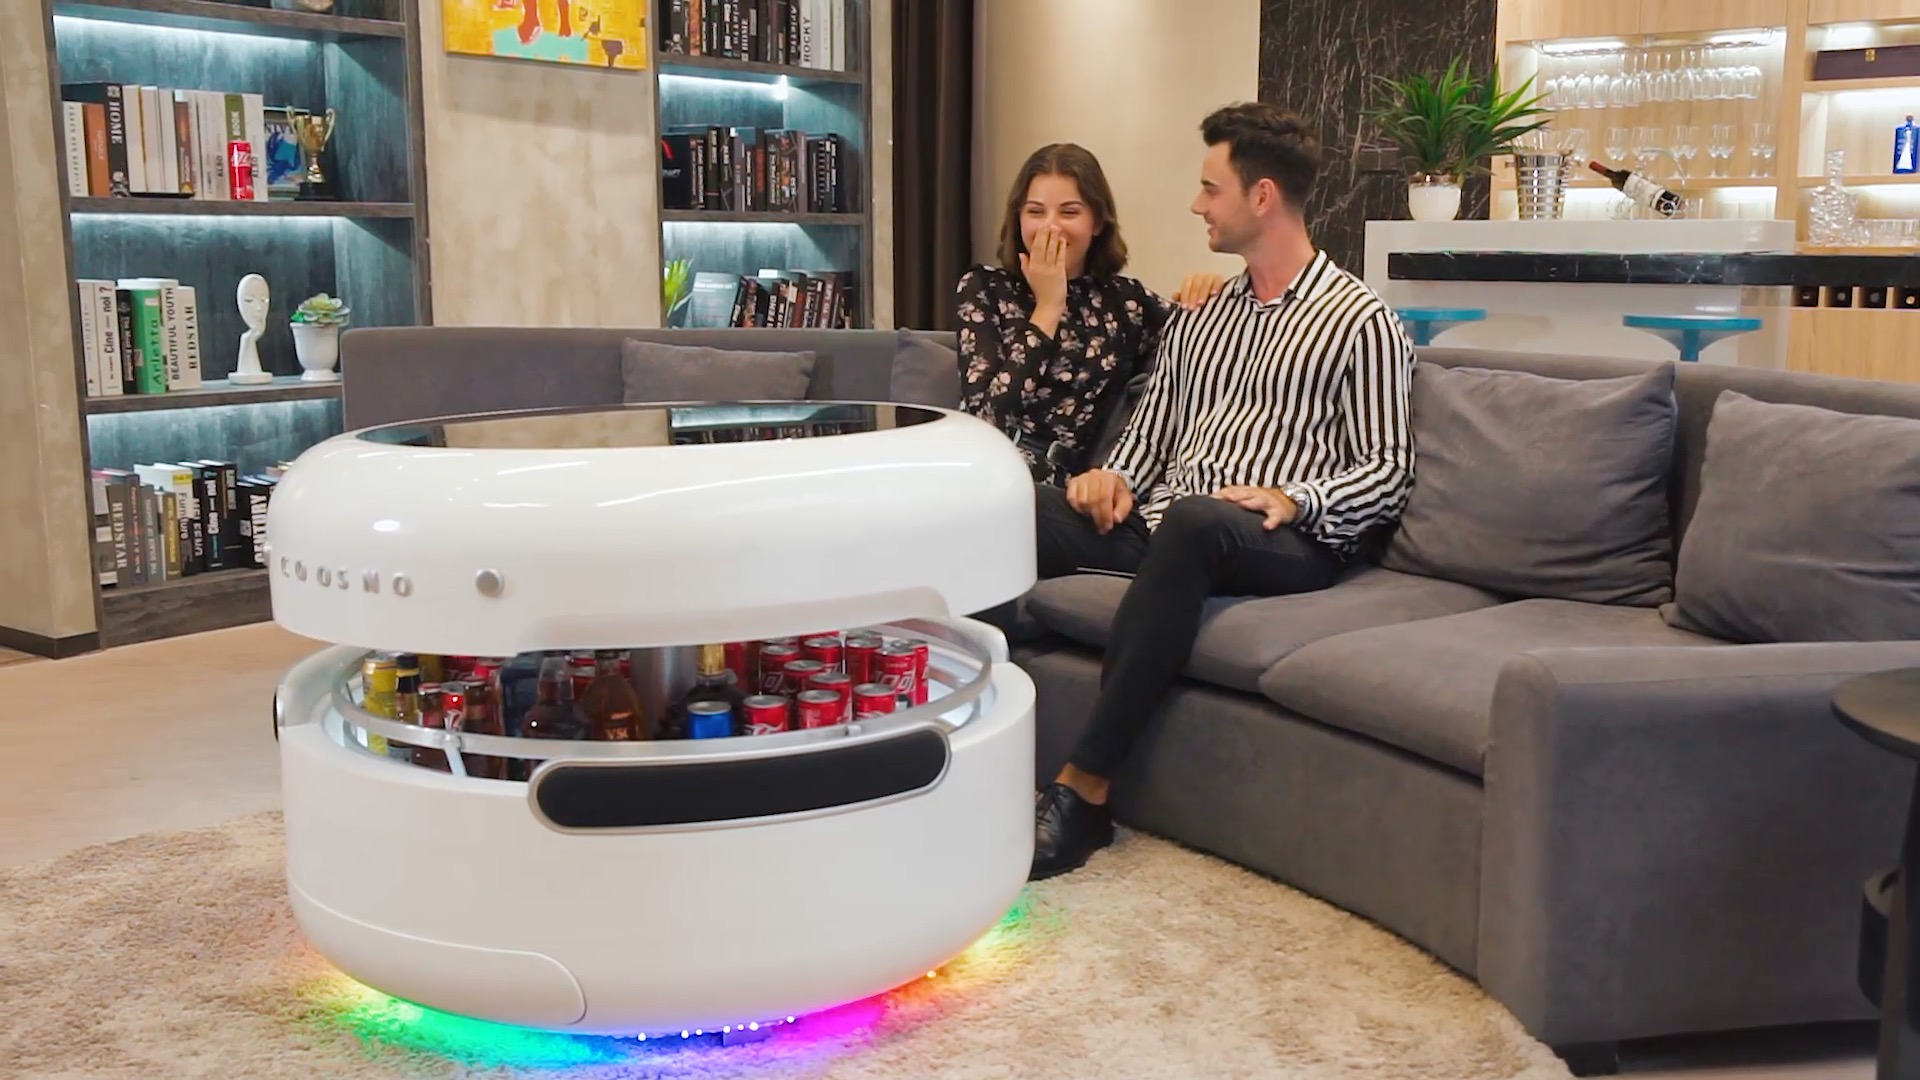 Coosno Redefines The Coffee Table With A Voice Controlled